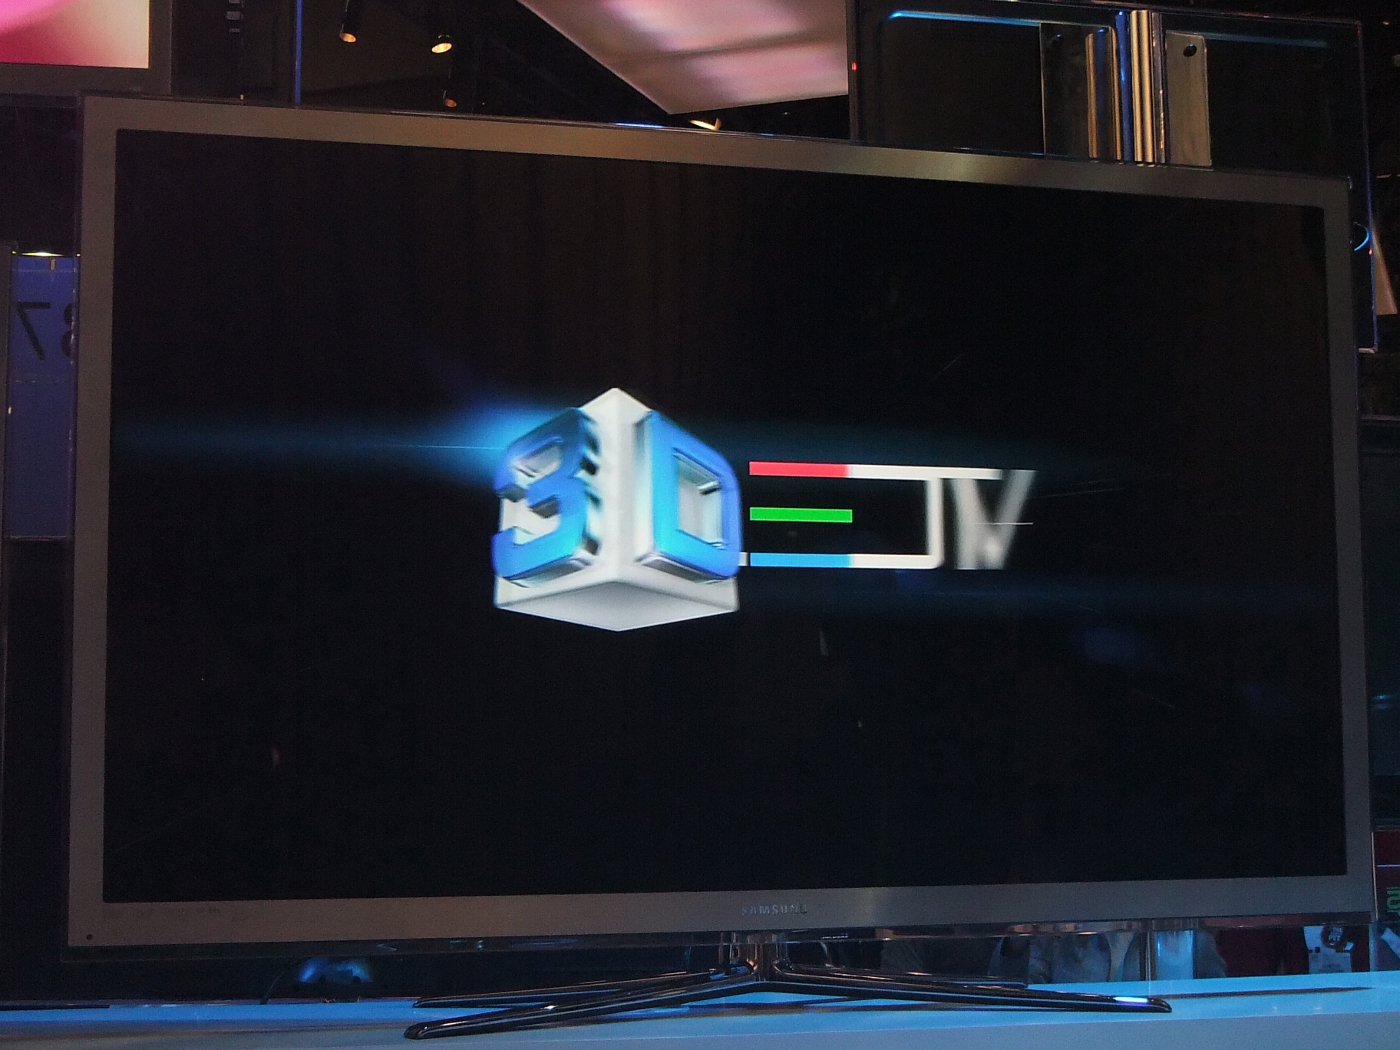 Samsung 120hz lcd tv demonstrated at ces 2010